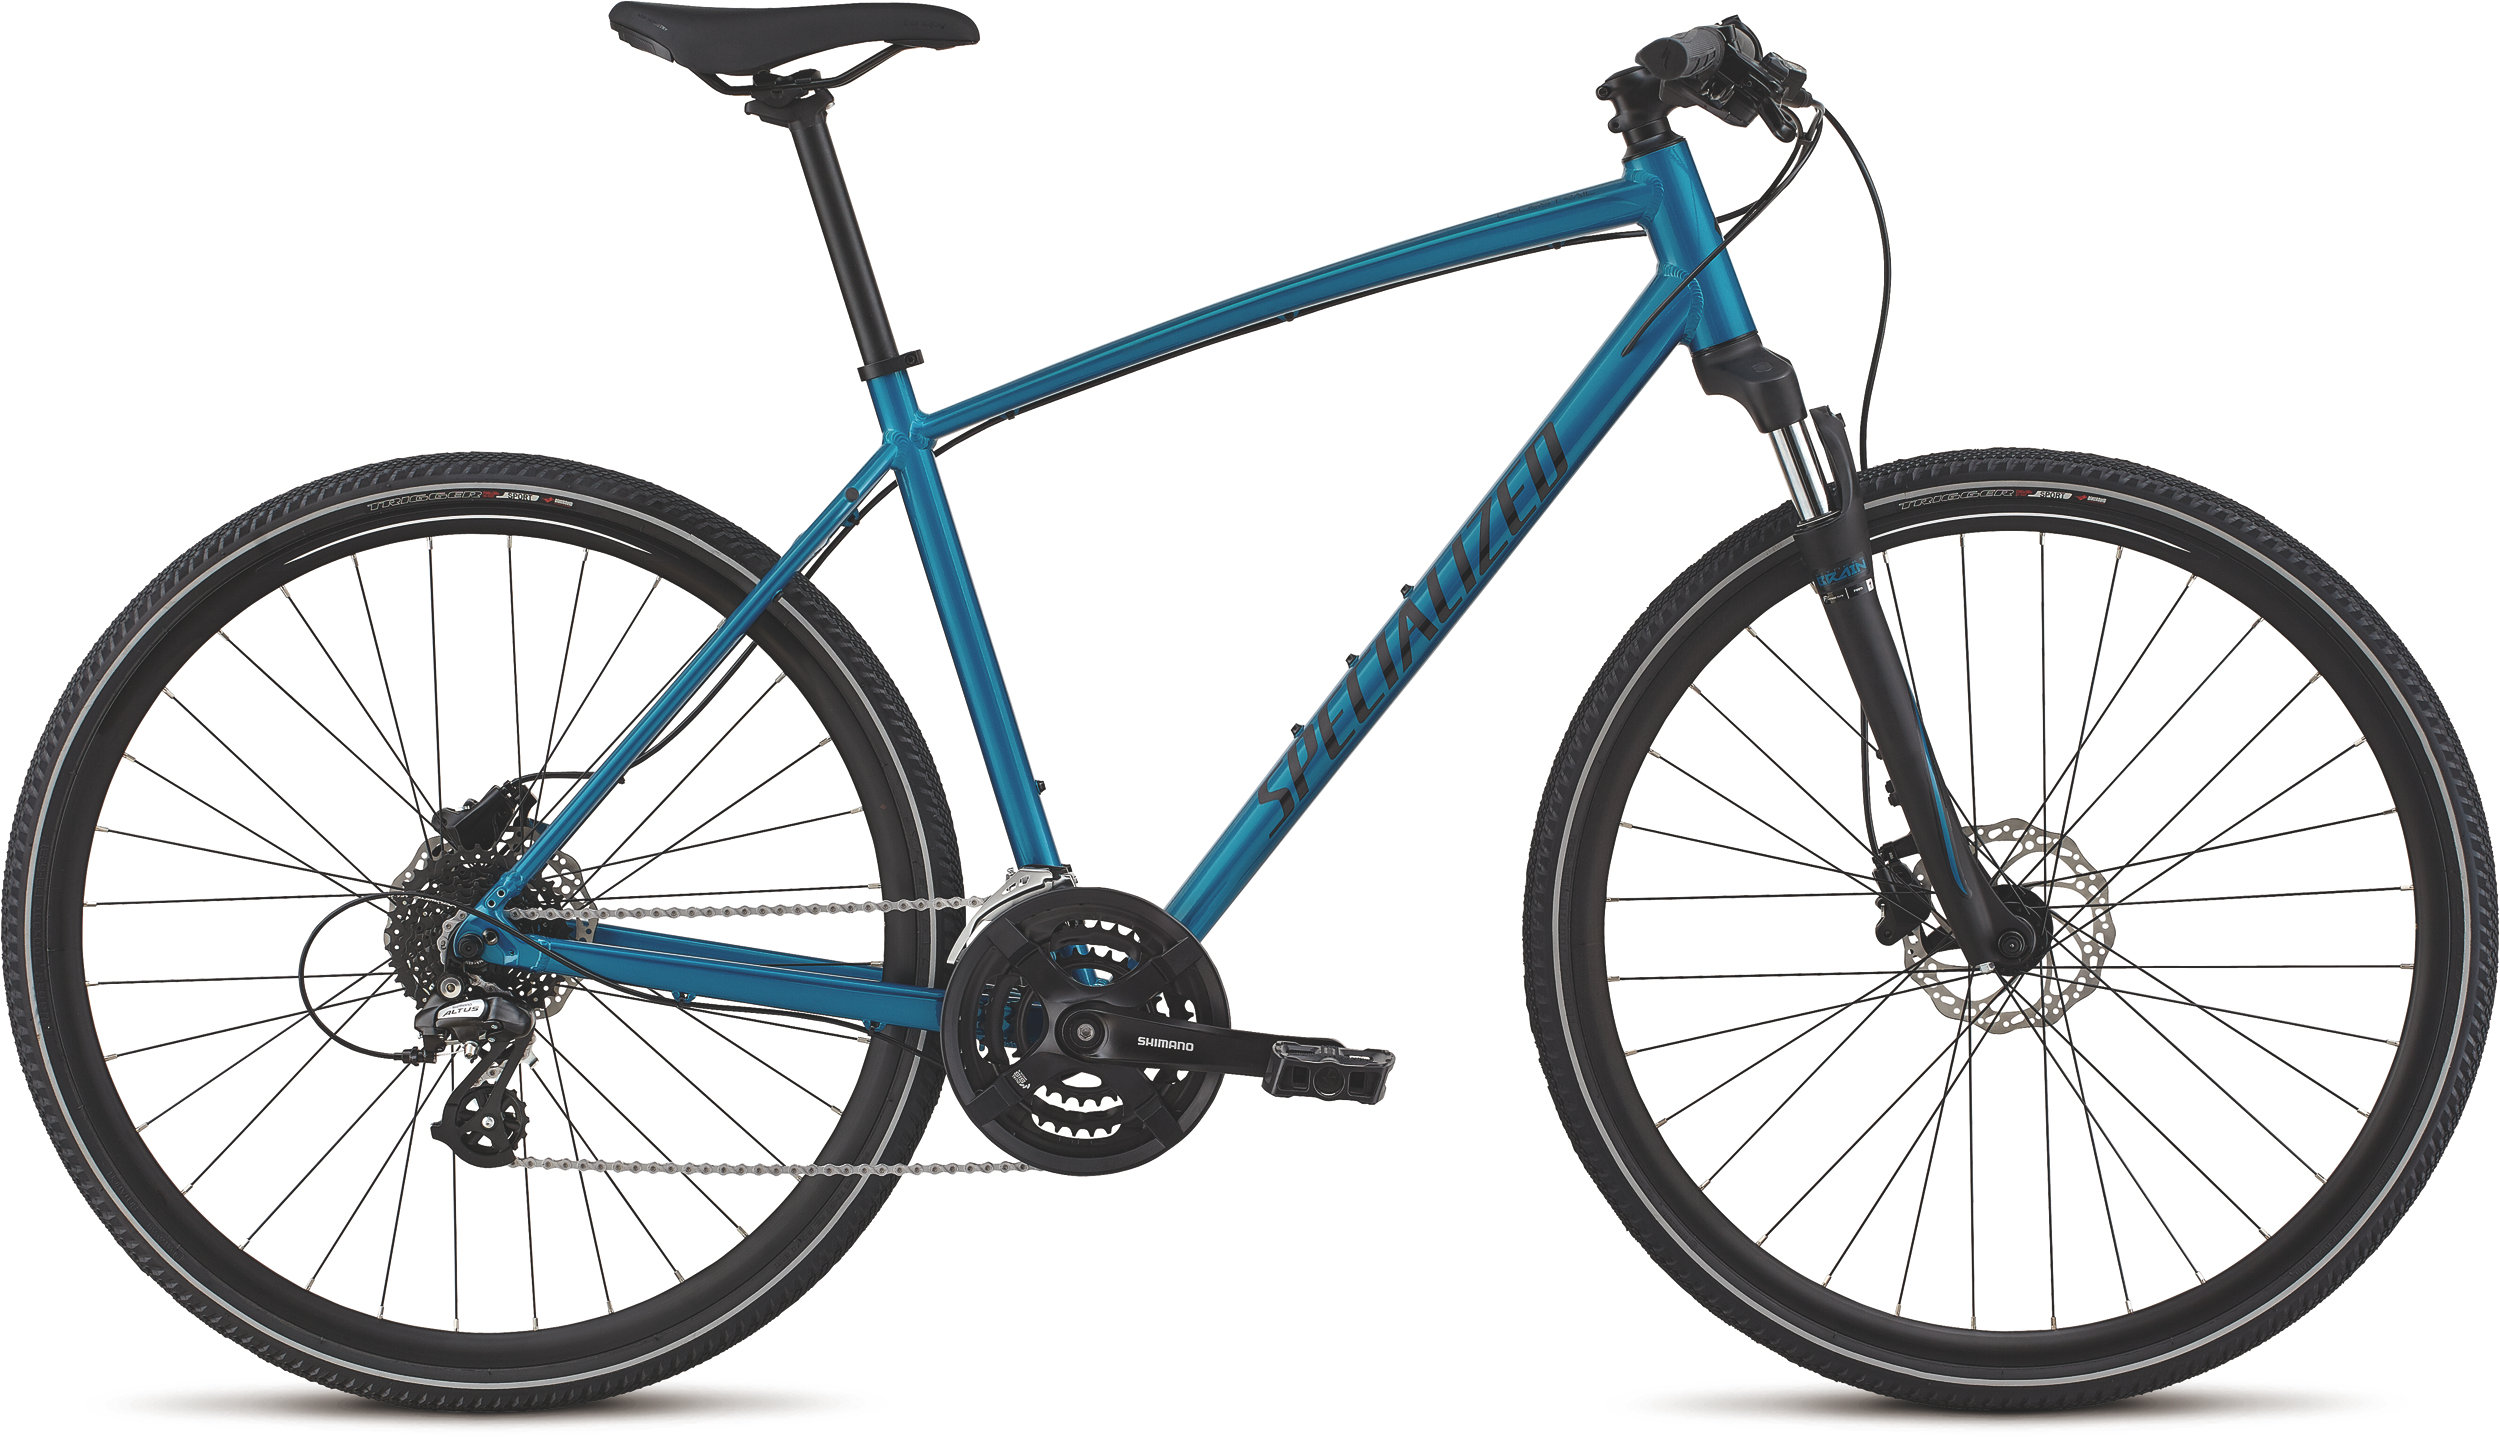 Specialized CrossTrail - Hydraulic Disc Teal Tint/Black/Flake Silver Reflective L - Alpha Bikes